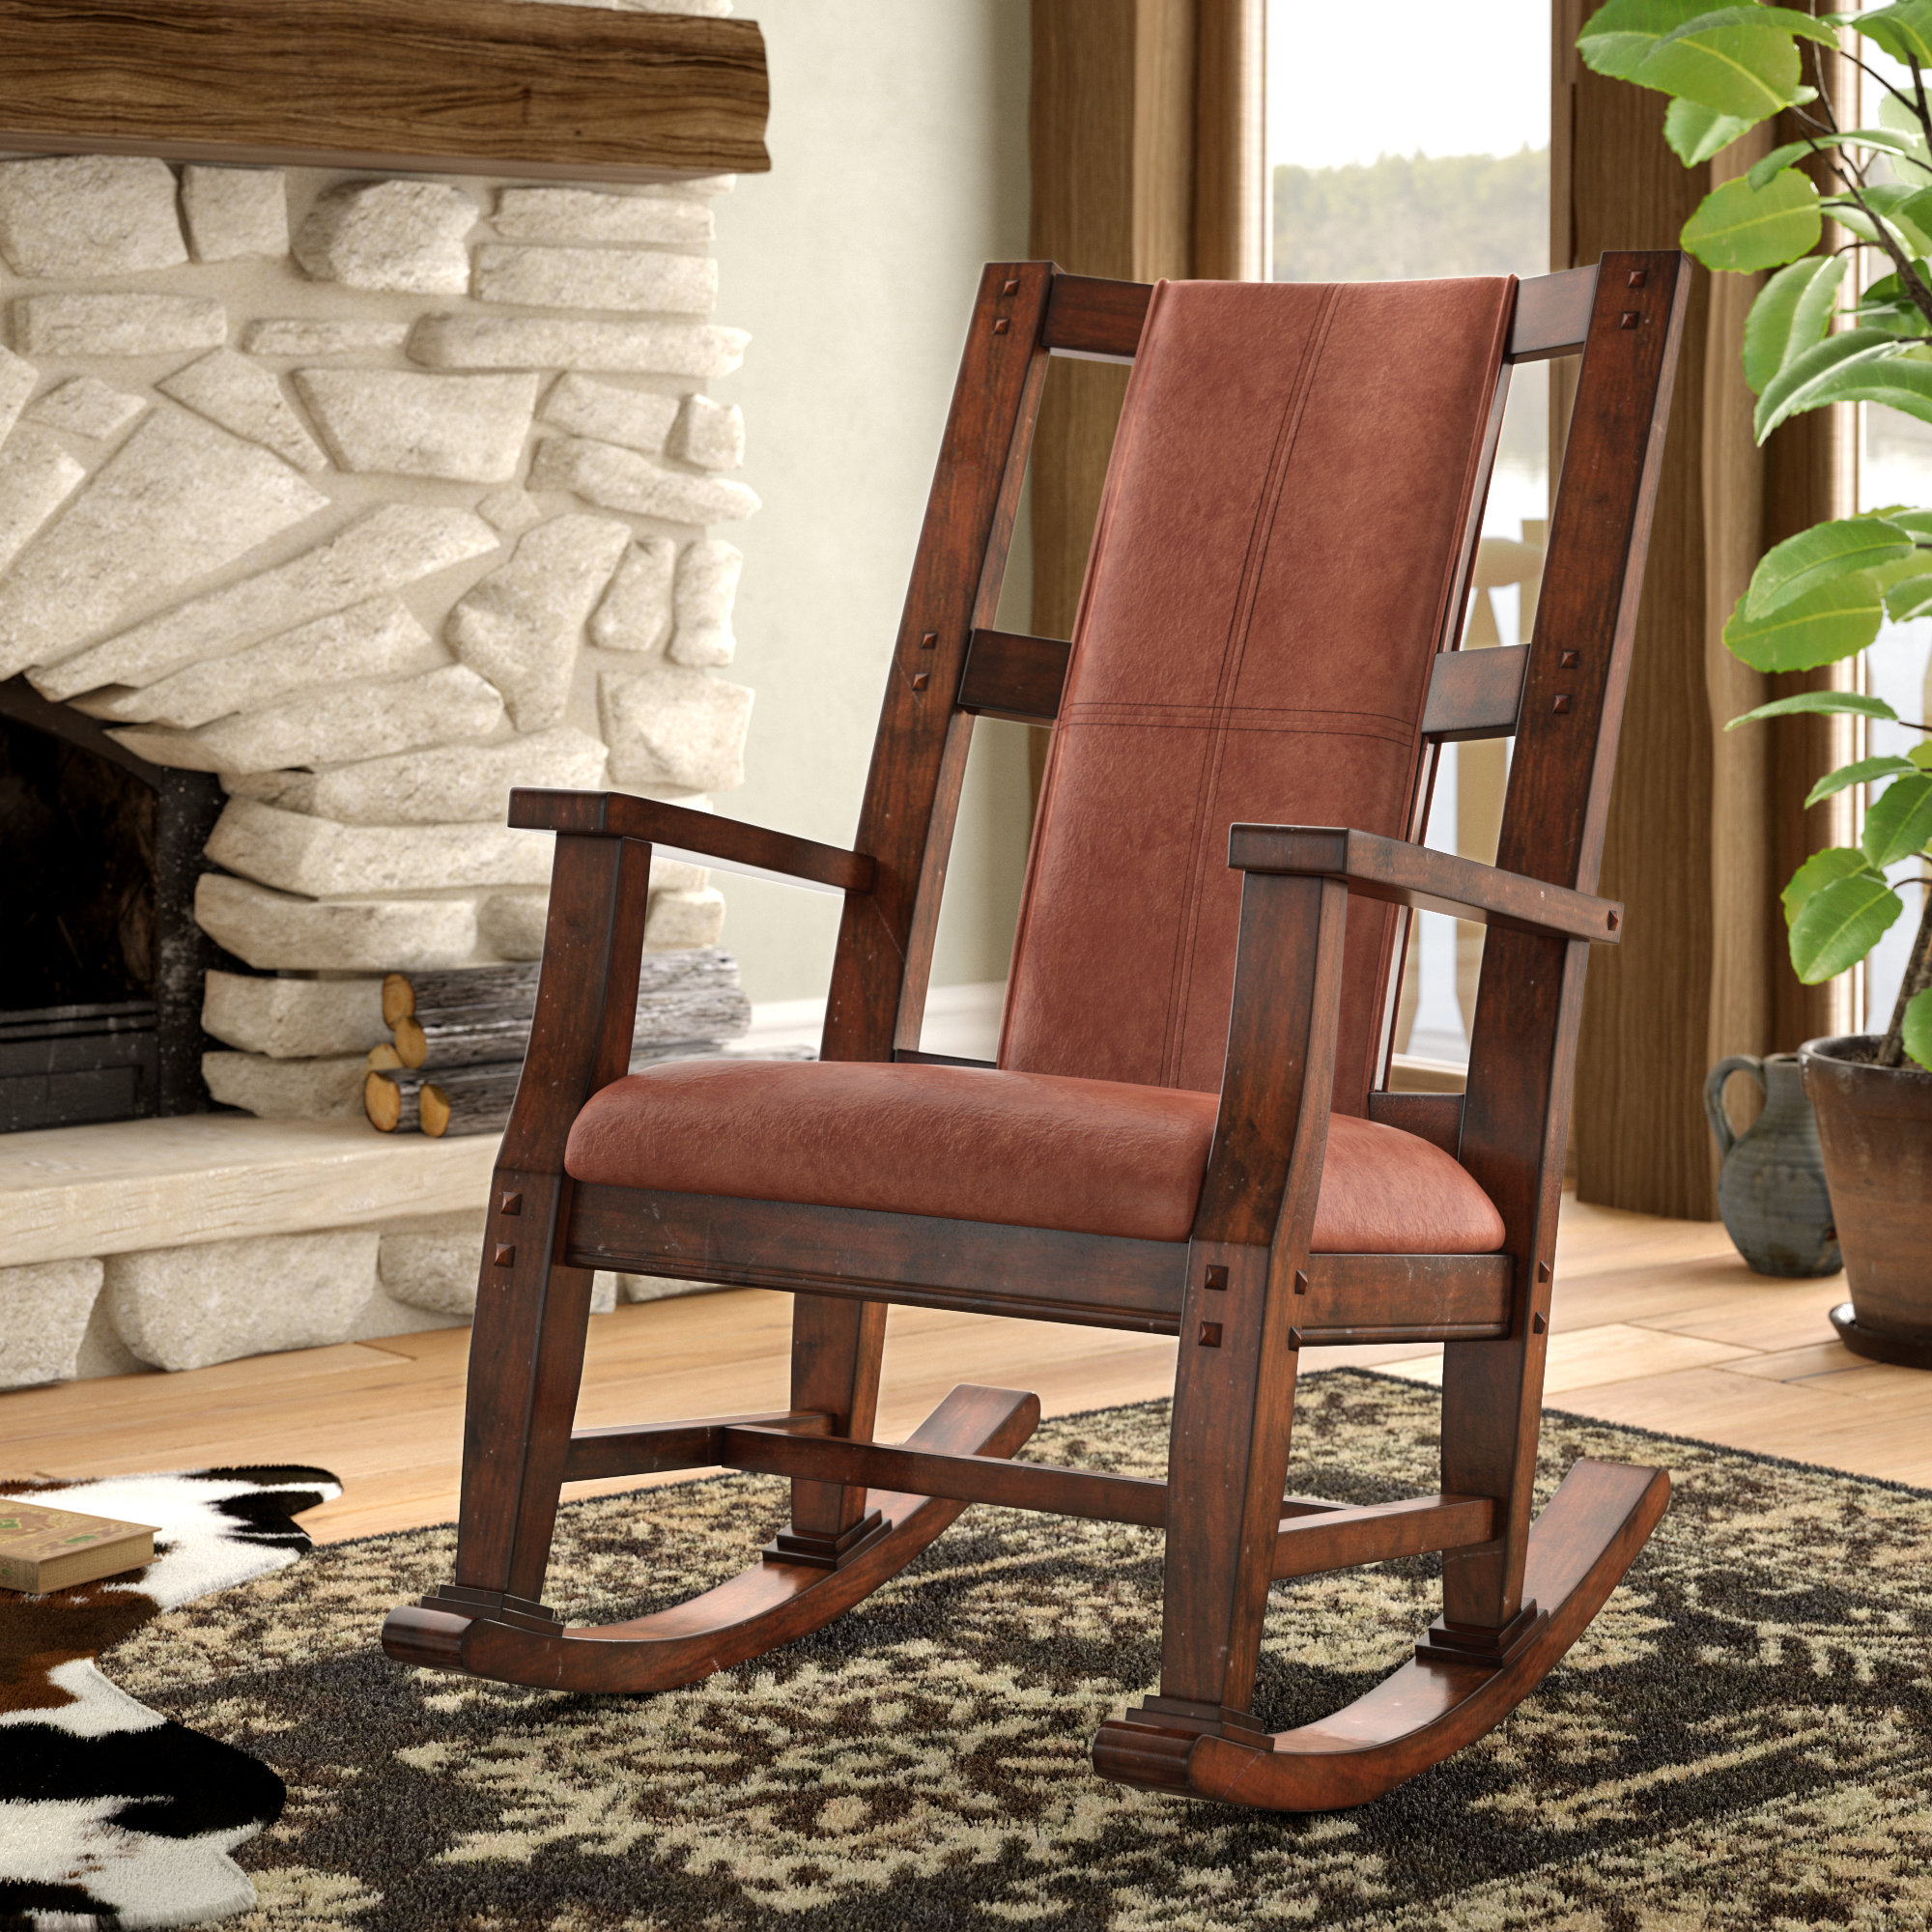 Inspiration about Wood Rocking Chairs You'll Love In 2019 | Wayfair Pertaining To Wooden Rocking Chairs With Fabric Upholstered Cushions, White (#12 of 20)